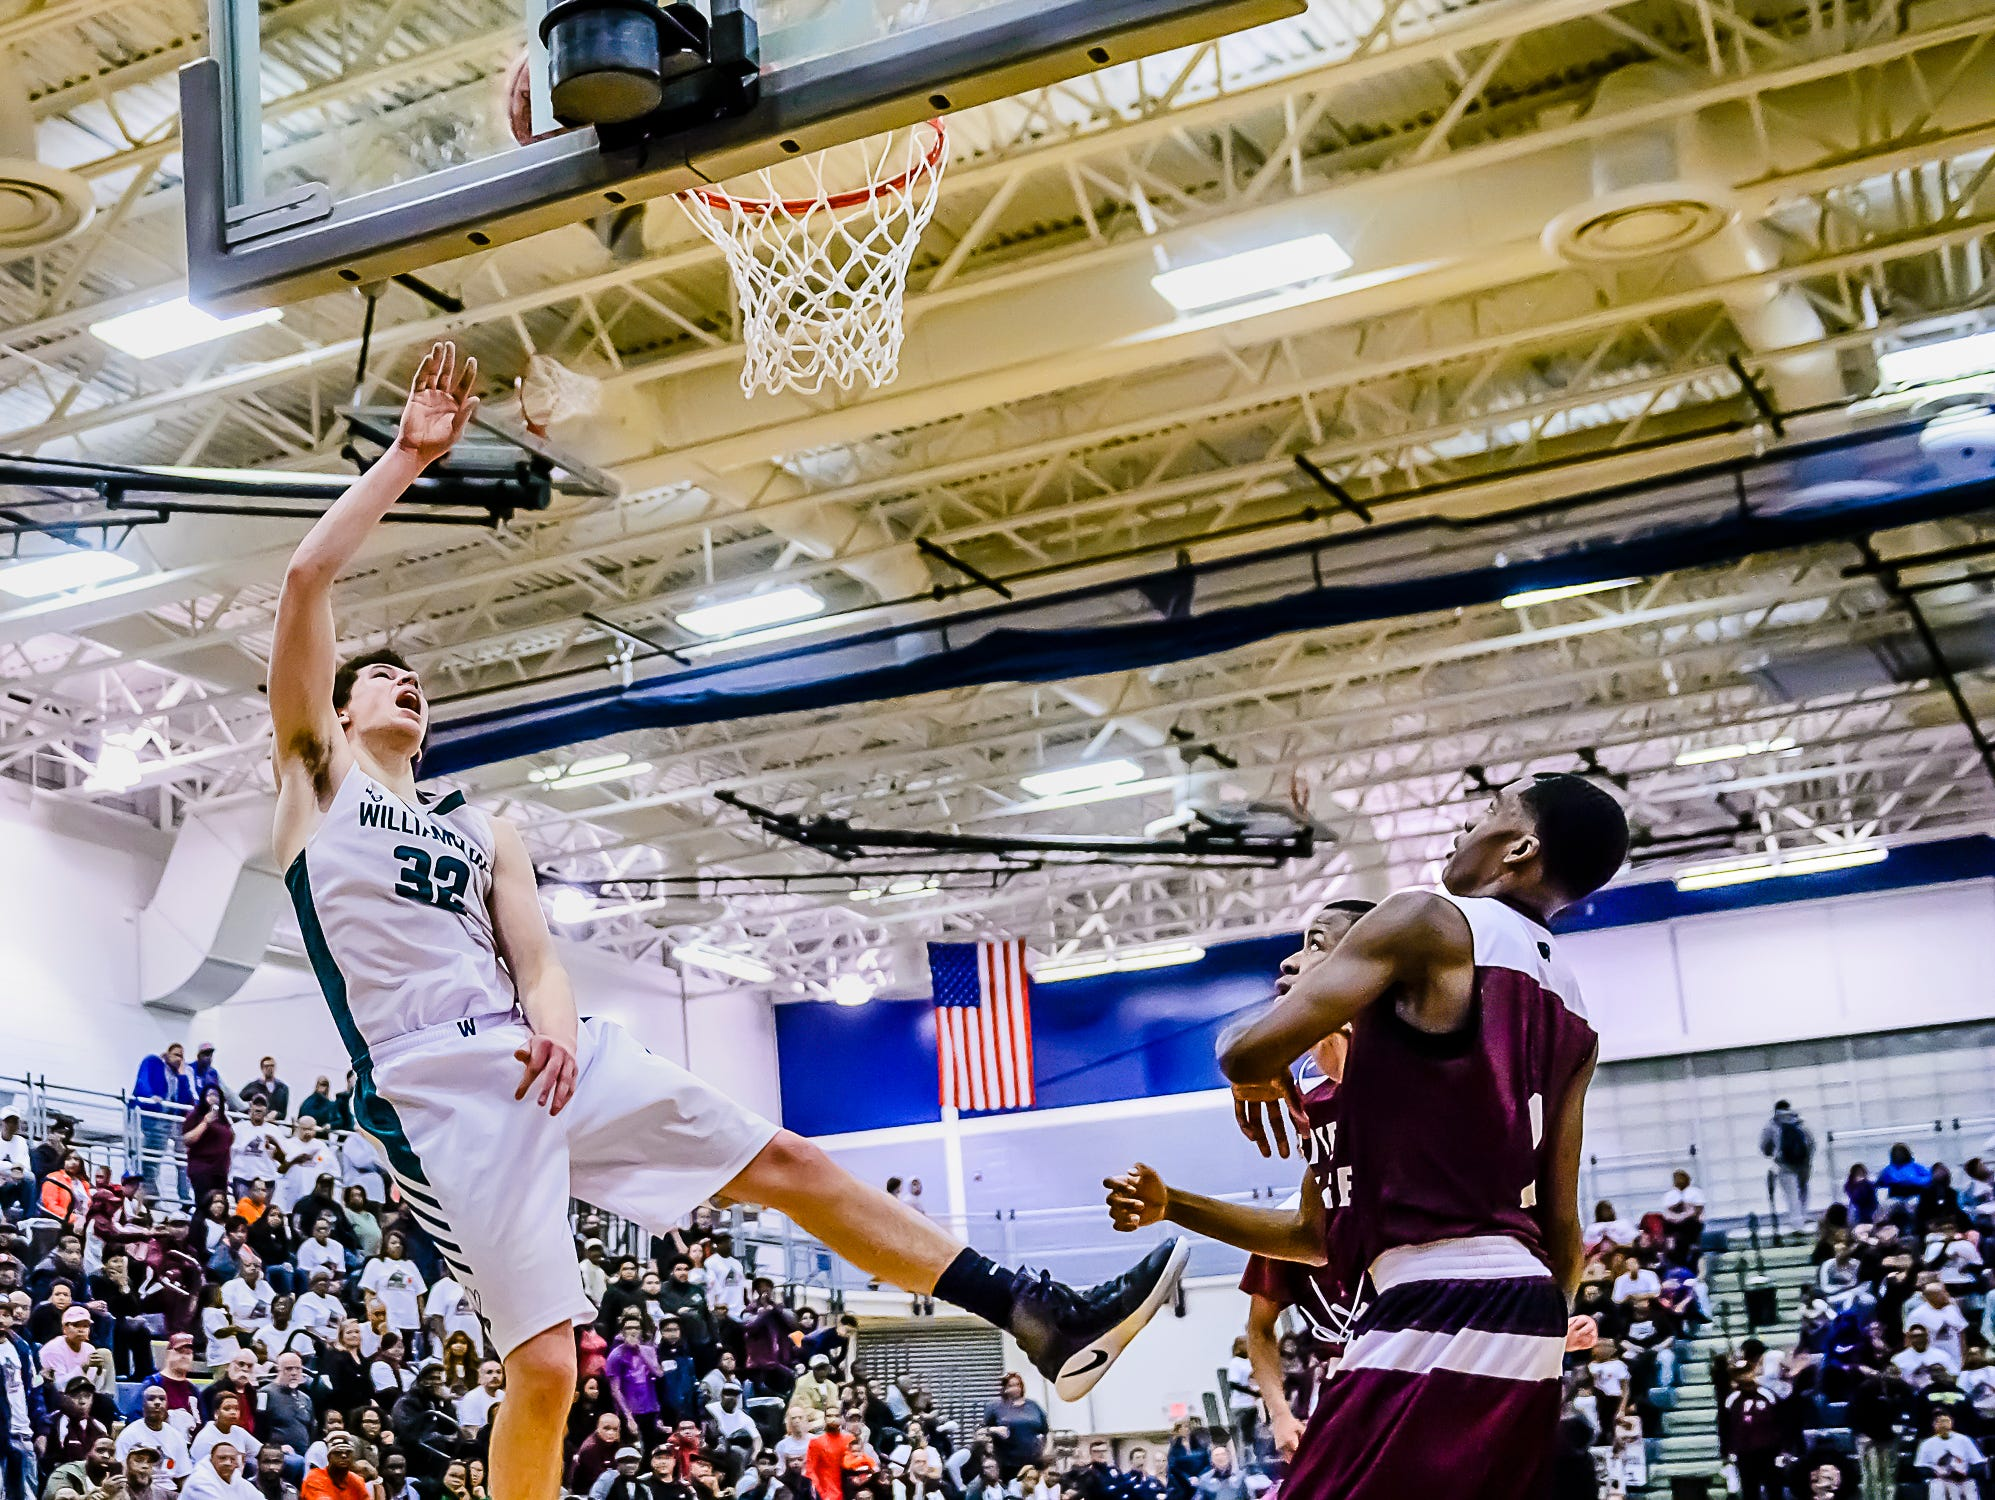 Sean Cobb ,left, of Williamston lays the ball in over River Rouge defenders to put Williamston up 50-49 with 1:15 remaining in their Class B state quarterfinal game Tuesday March 21, 2017 at Chelsea High School in Chelsea. KEVIN W. FOWLER PHOTO